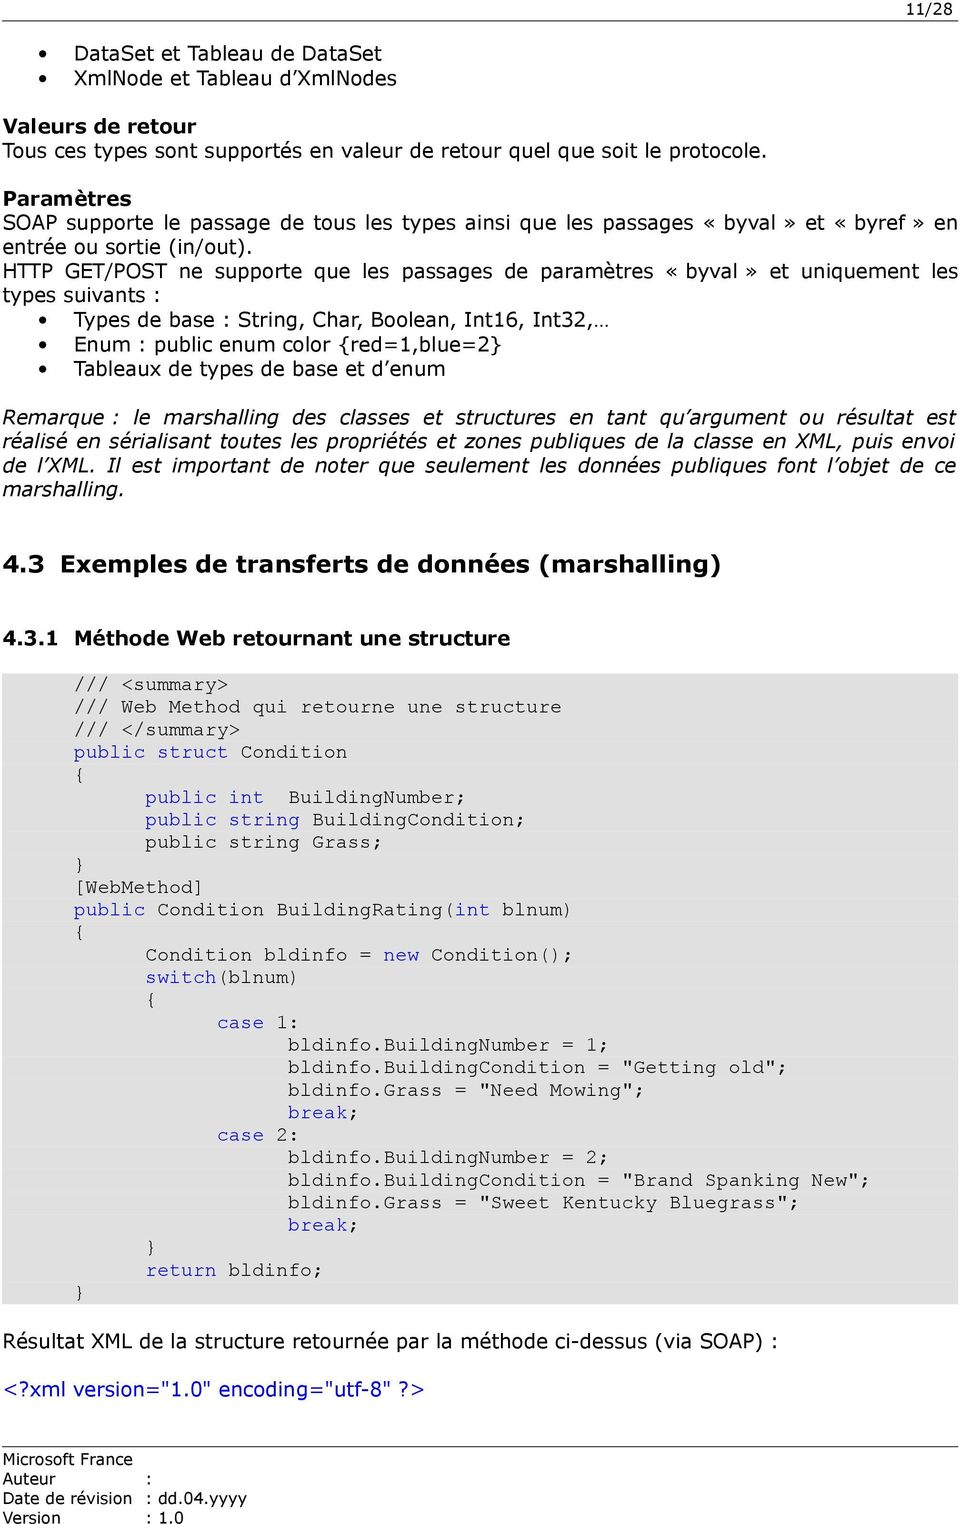 HTTP GET/POST ne supporte que les passages de paramètres «byval» et uniquement les types suivants : Types de base : String, Char, Boolean, Int16, Int32, Enum : public enum color {red=1,blue=2}